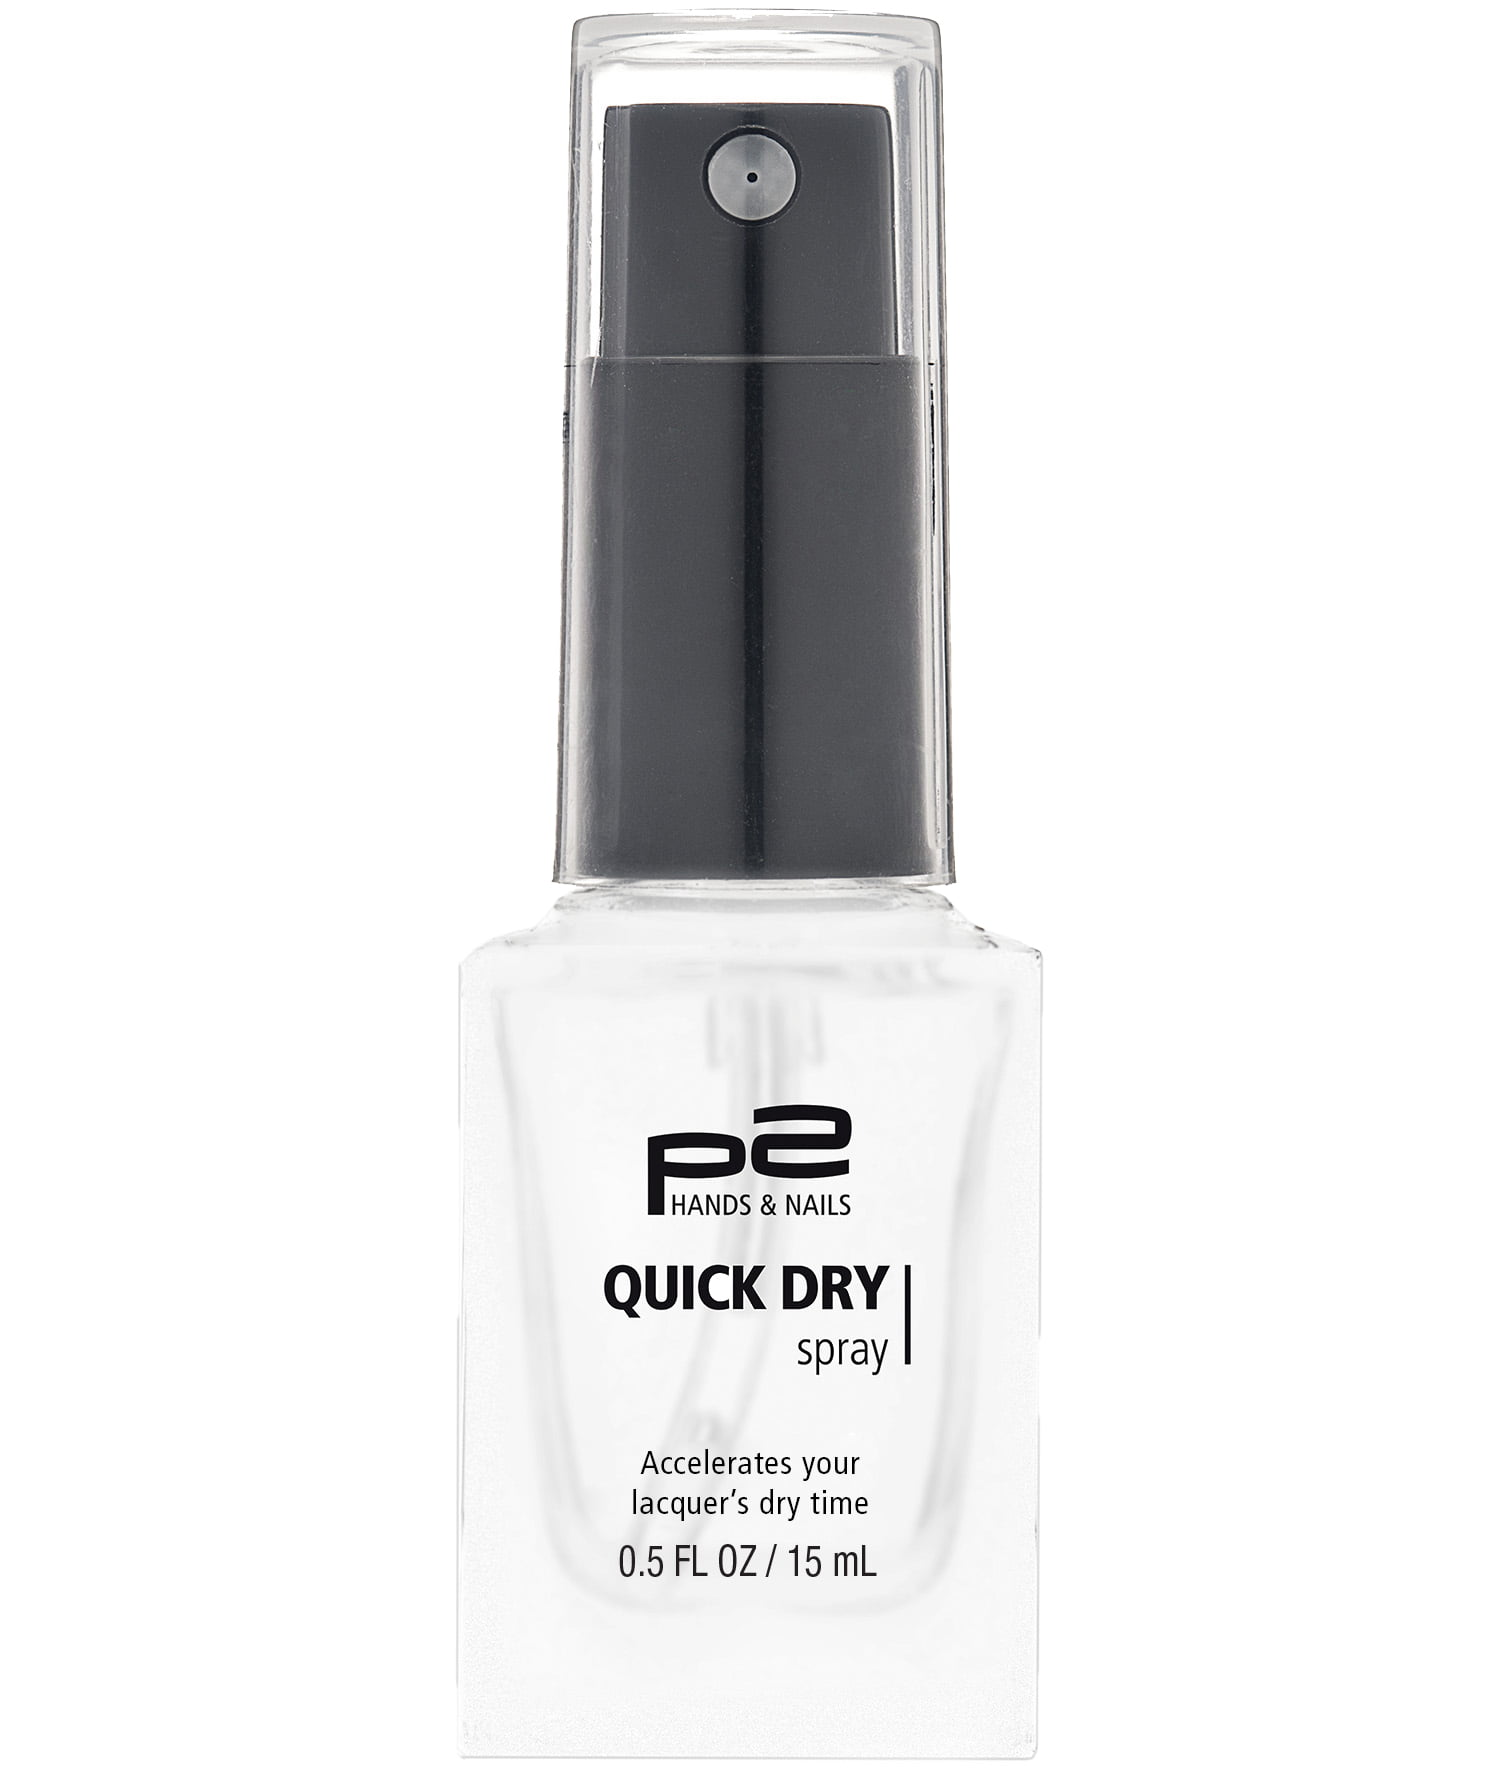 P2 Quick Dry Spray - Walmart.com